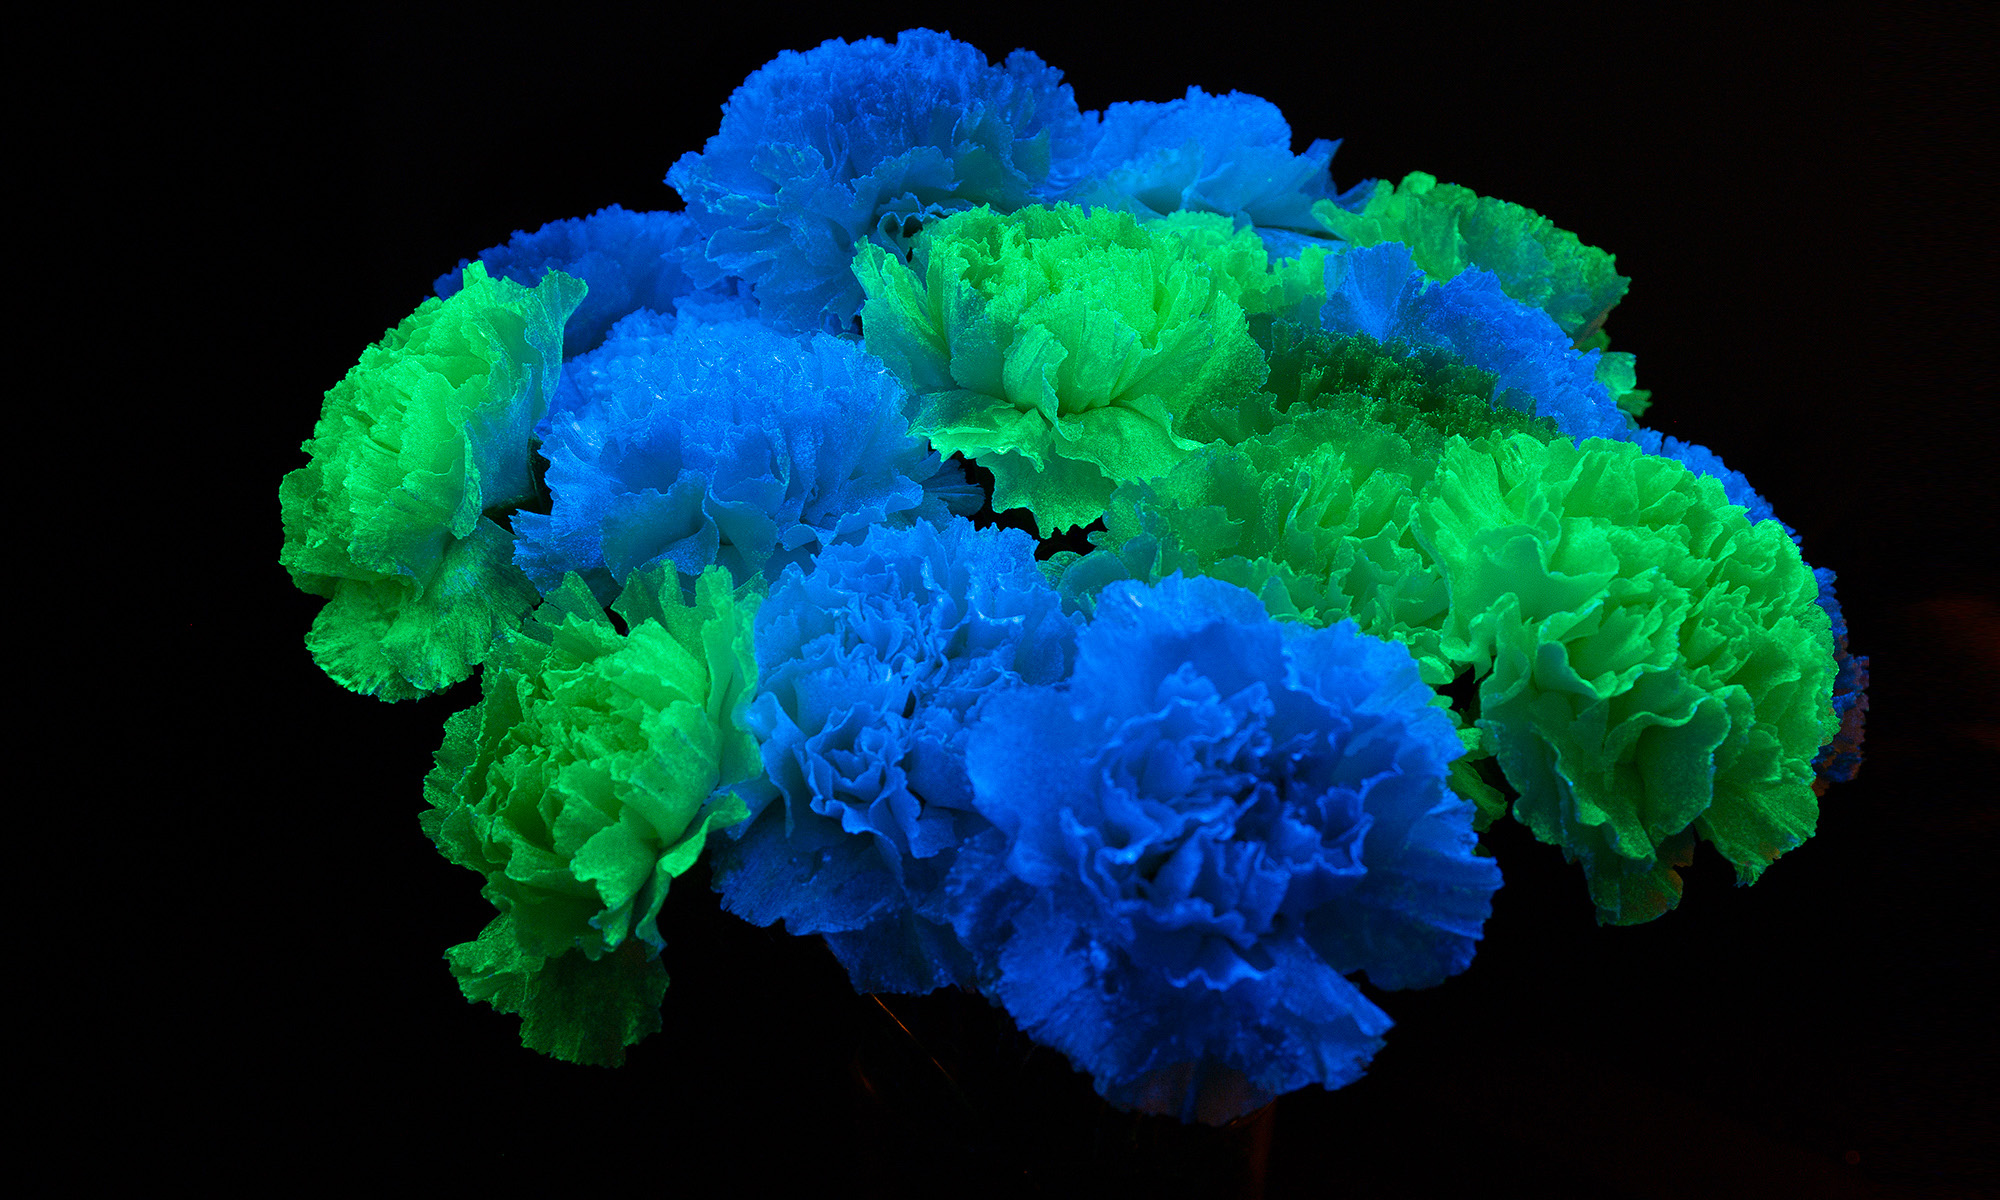 flAVATAR carnation glow in the dark